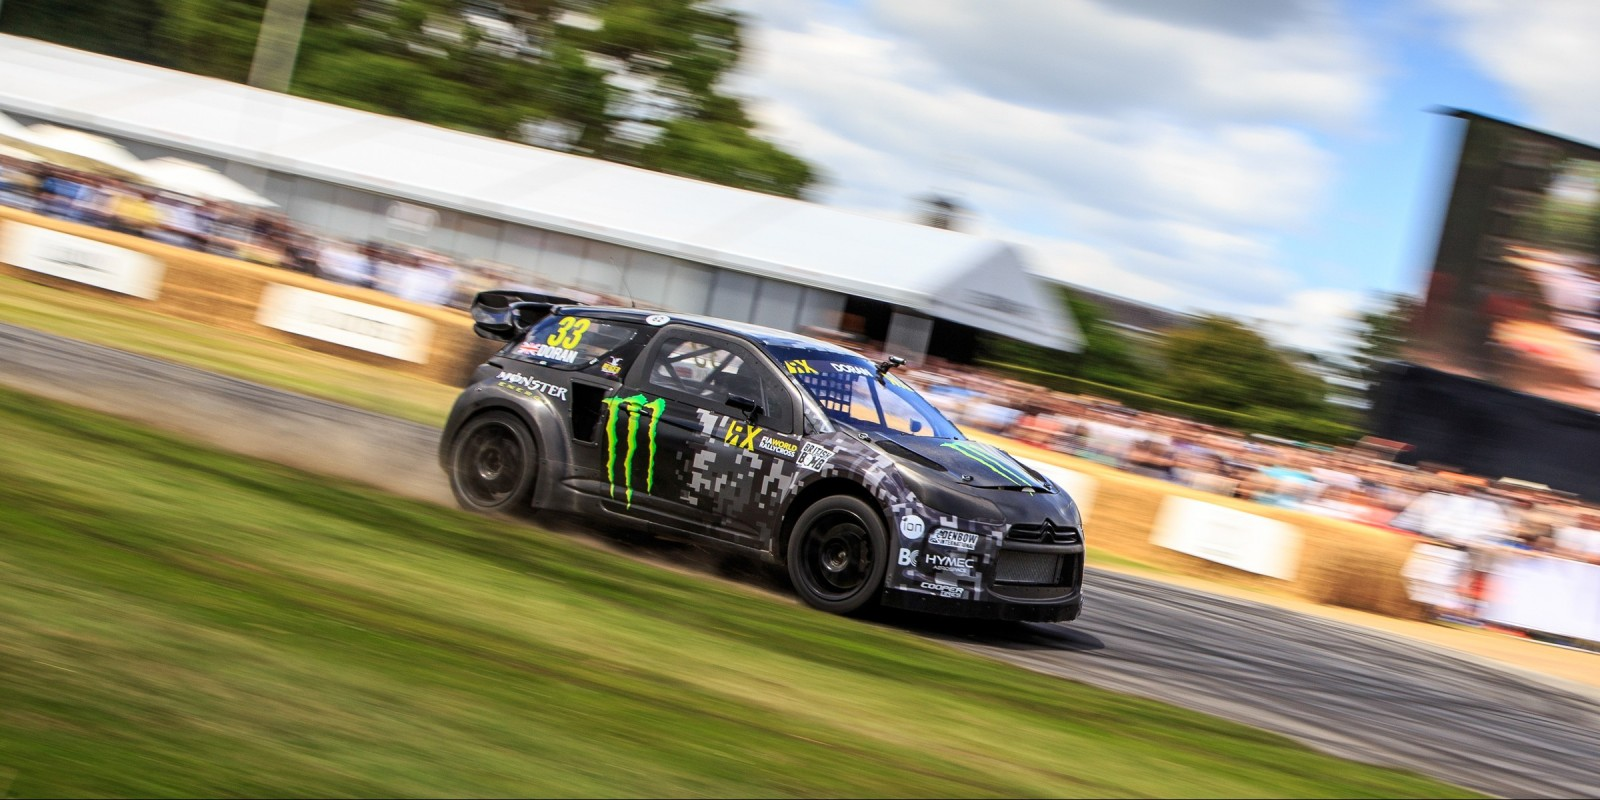 Liam Doran at Goodwood FOS